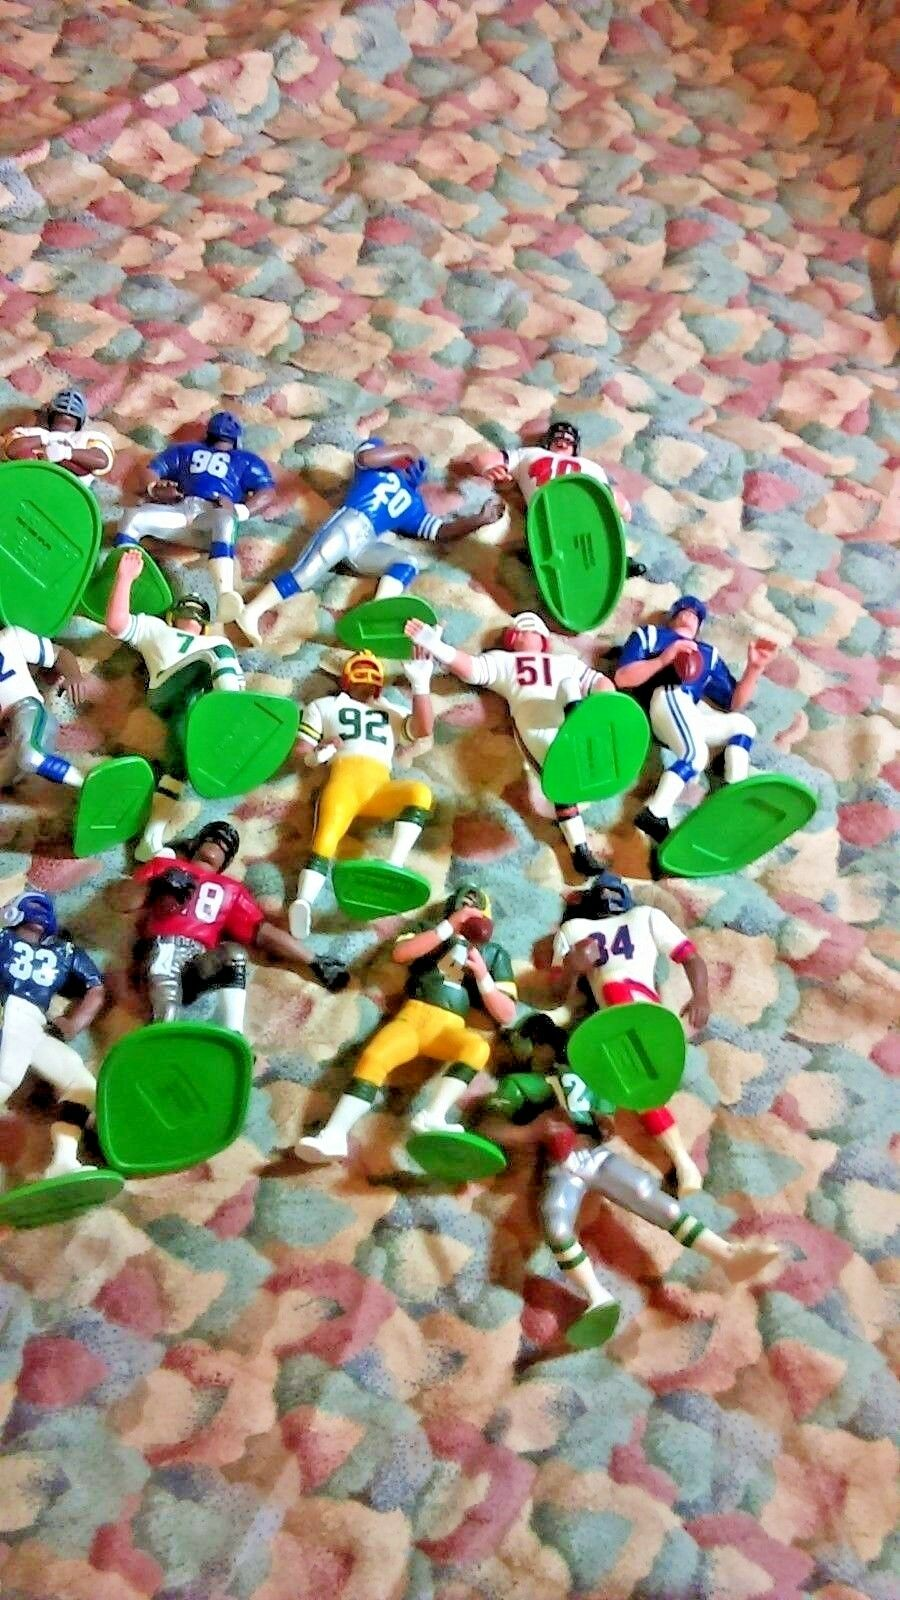 Lot of 14   Baseball Players Players Players Action Figures Toys  NFLP Gift For Kids 0ebc82